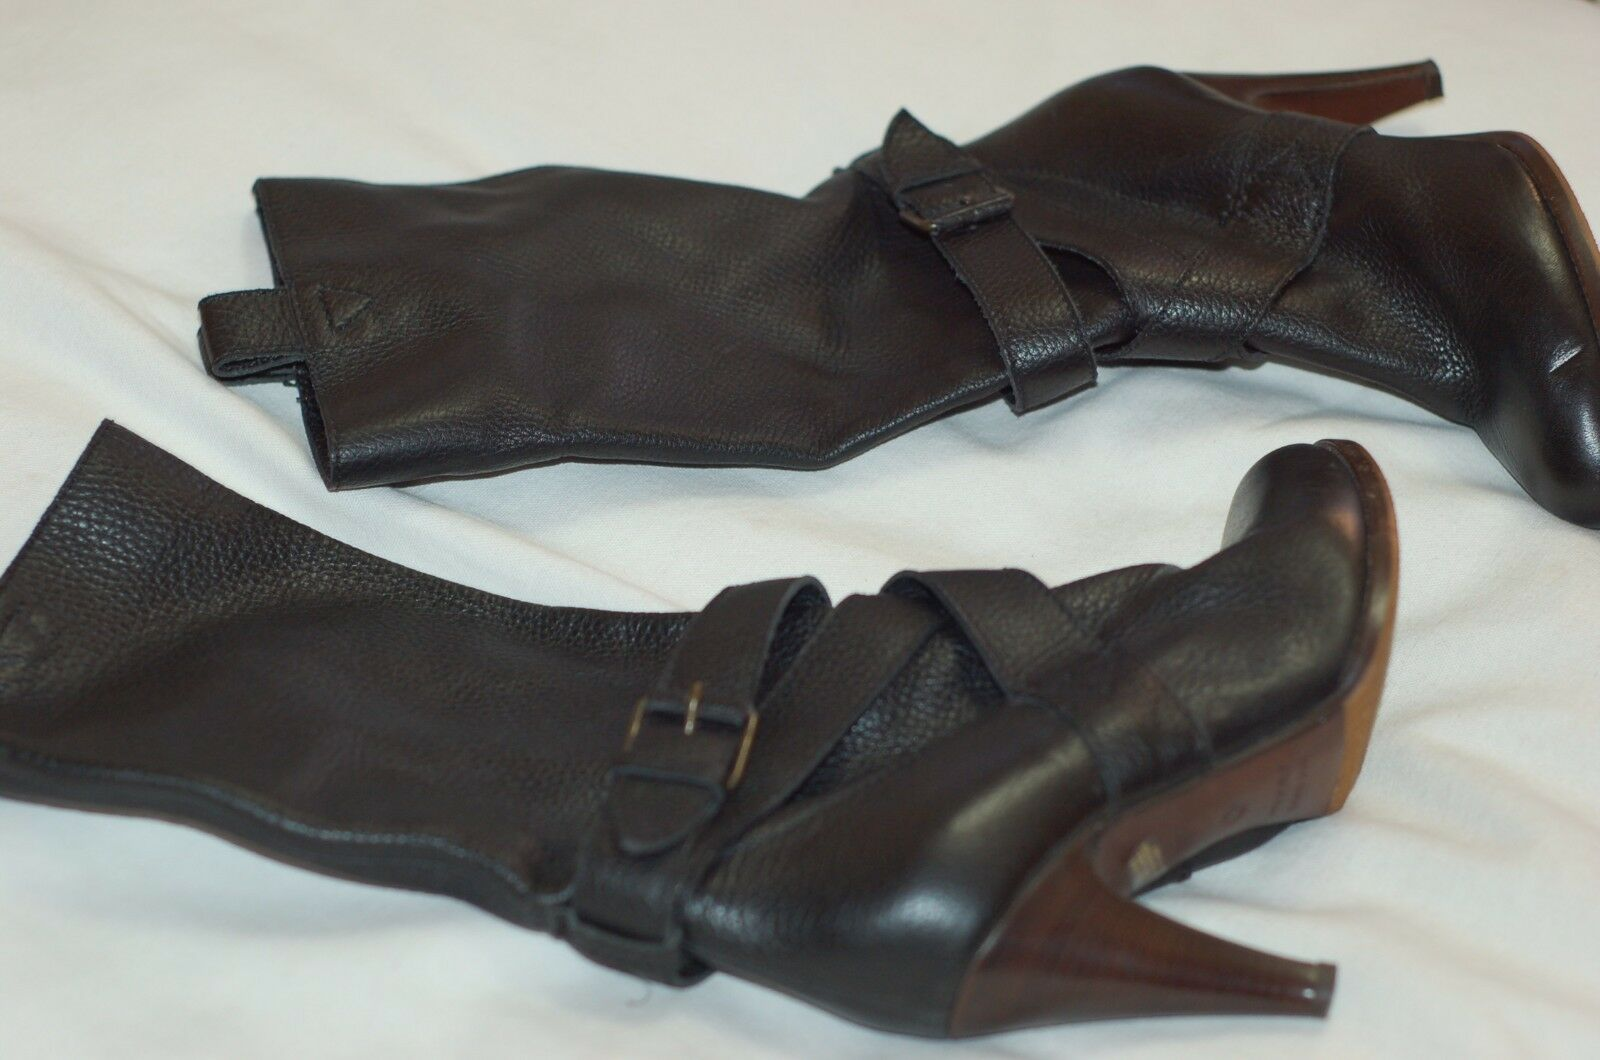 NWOB L'autre Chose Black Leather Heels Mid Calf Boots shoes Sz 36 Made in